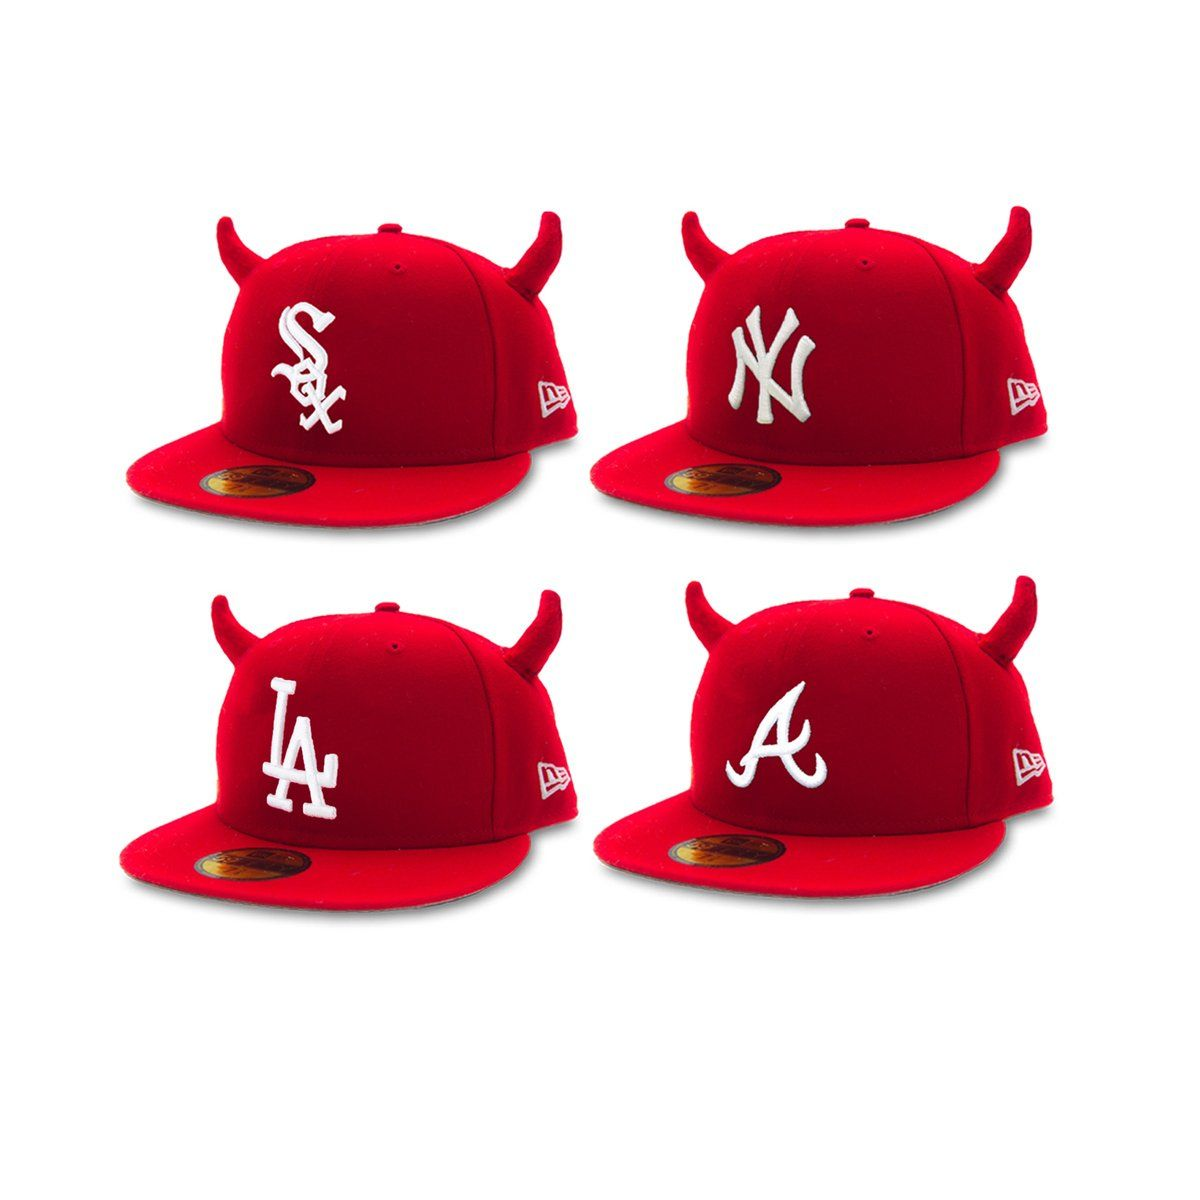 Horned Fitted Cap Ryder Studios Cap Fitted Hats Ny Hat